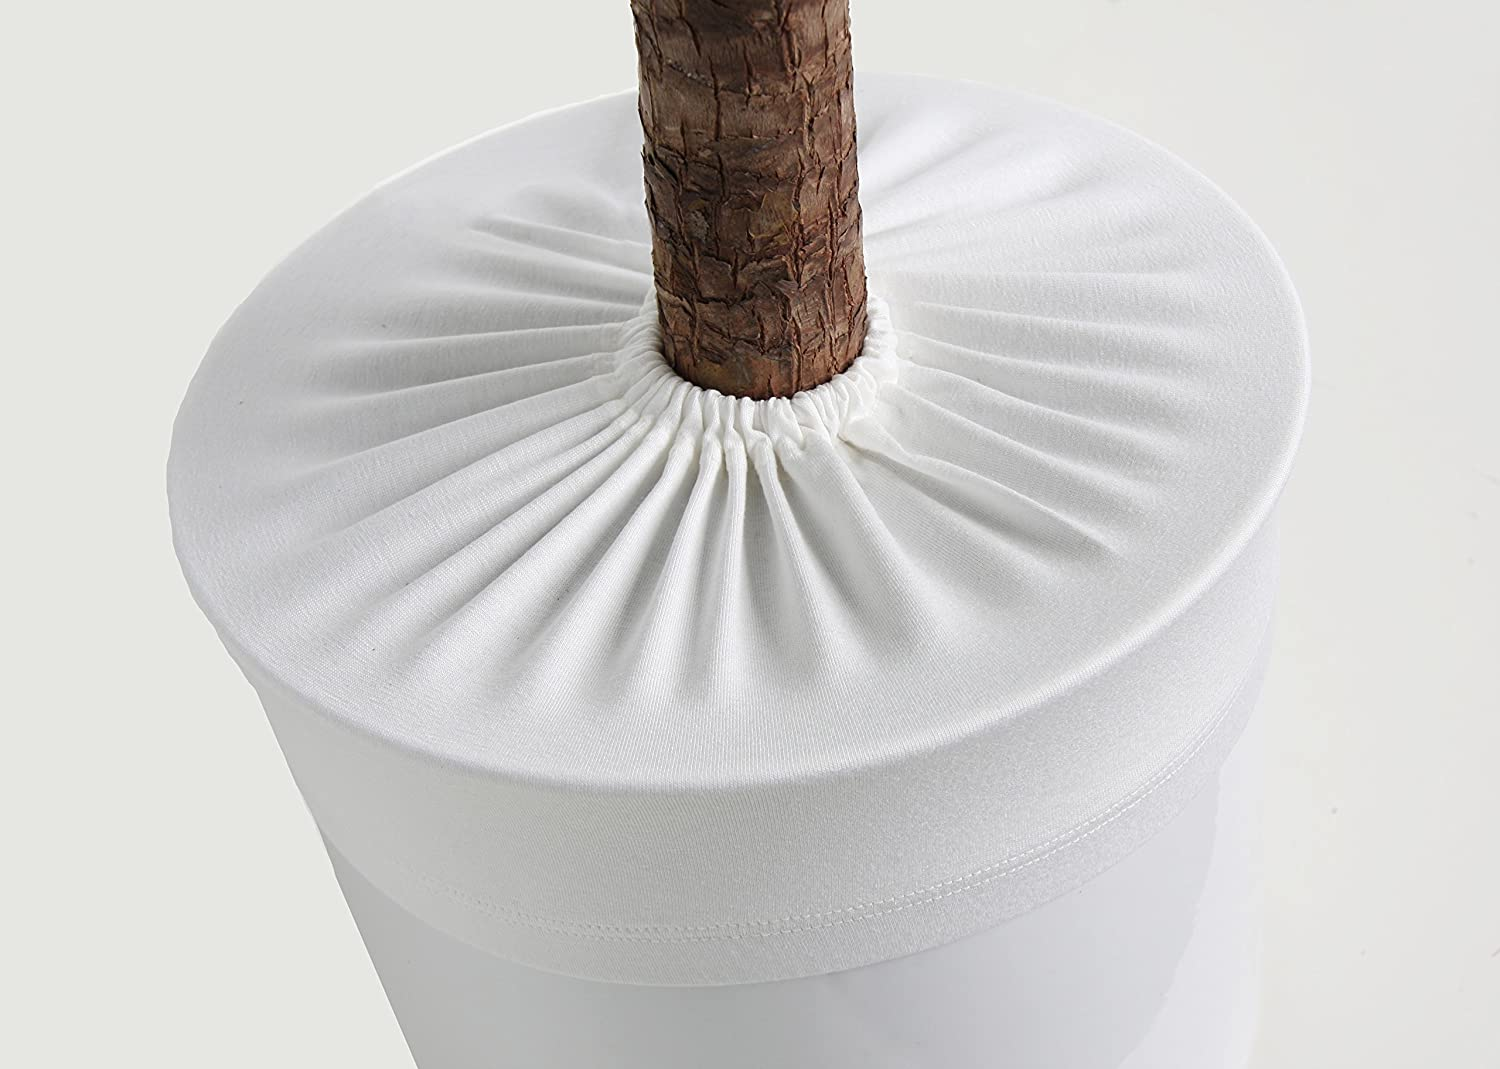 Plant pot soil guard (diameter: 26-28 cm, natural white) vamani